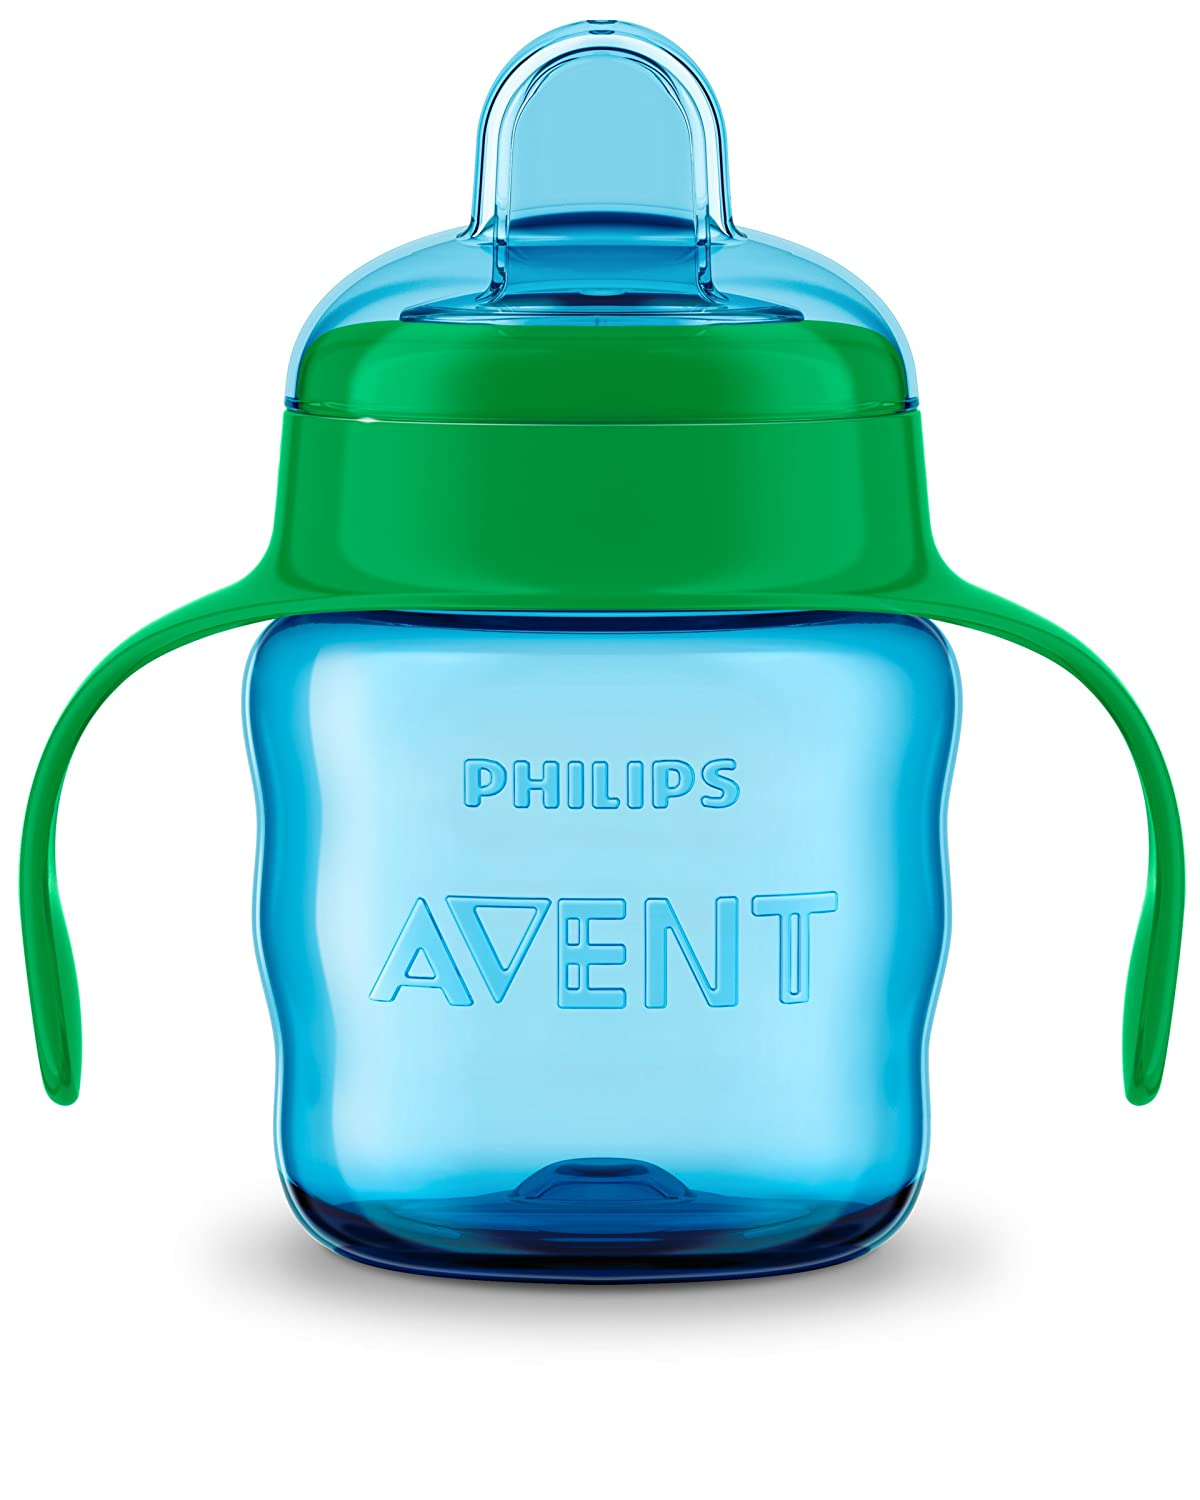 Philips Avent Easy Sip Spout Cup with Handle, 200 ml - Blue/Green - SCF551/15